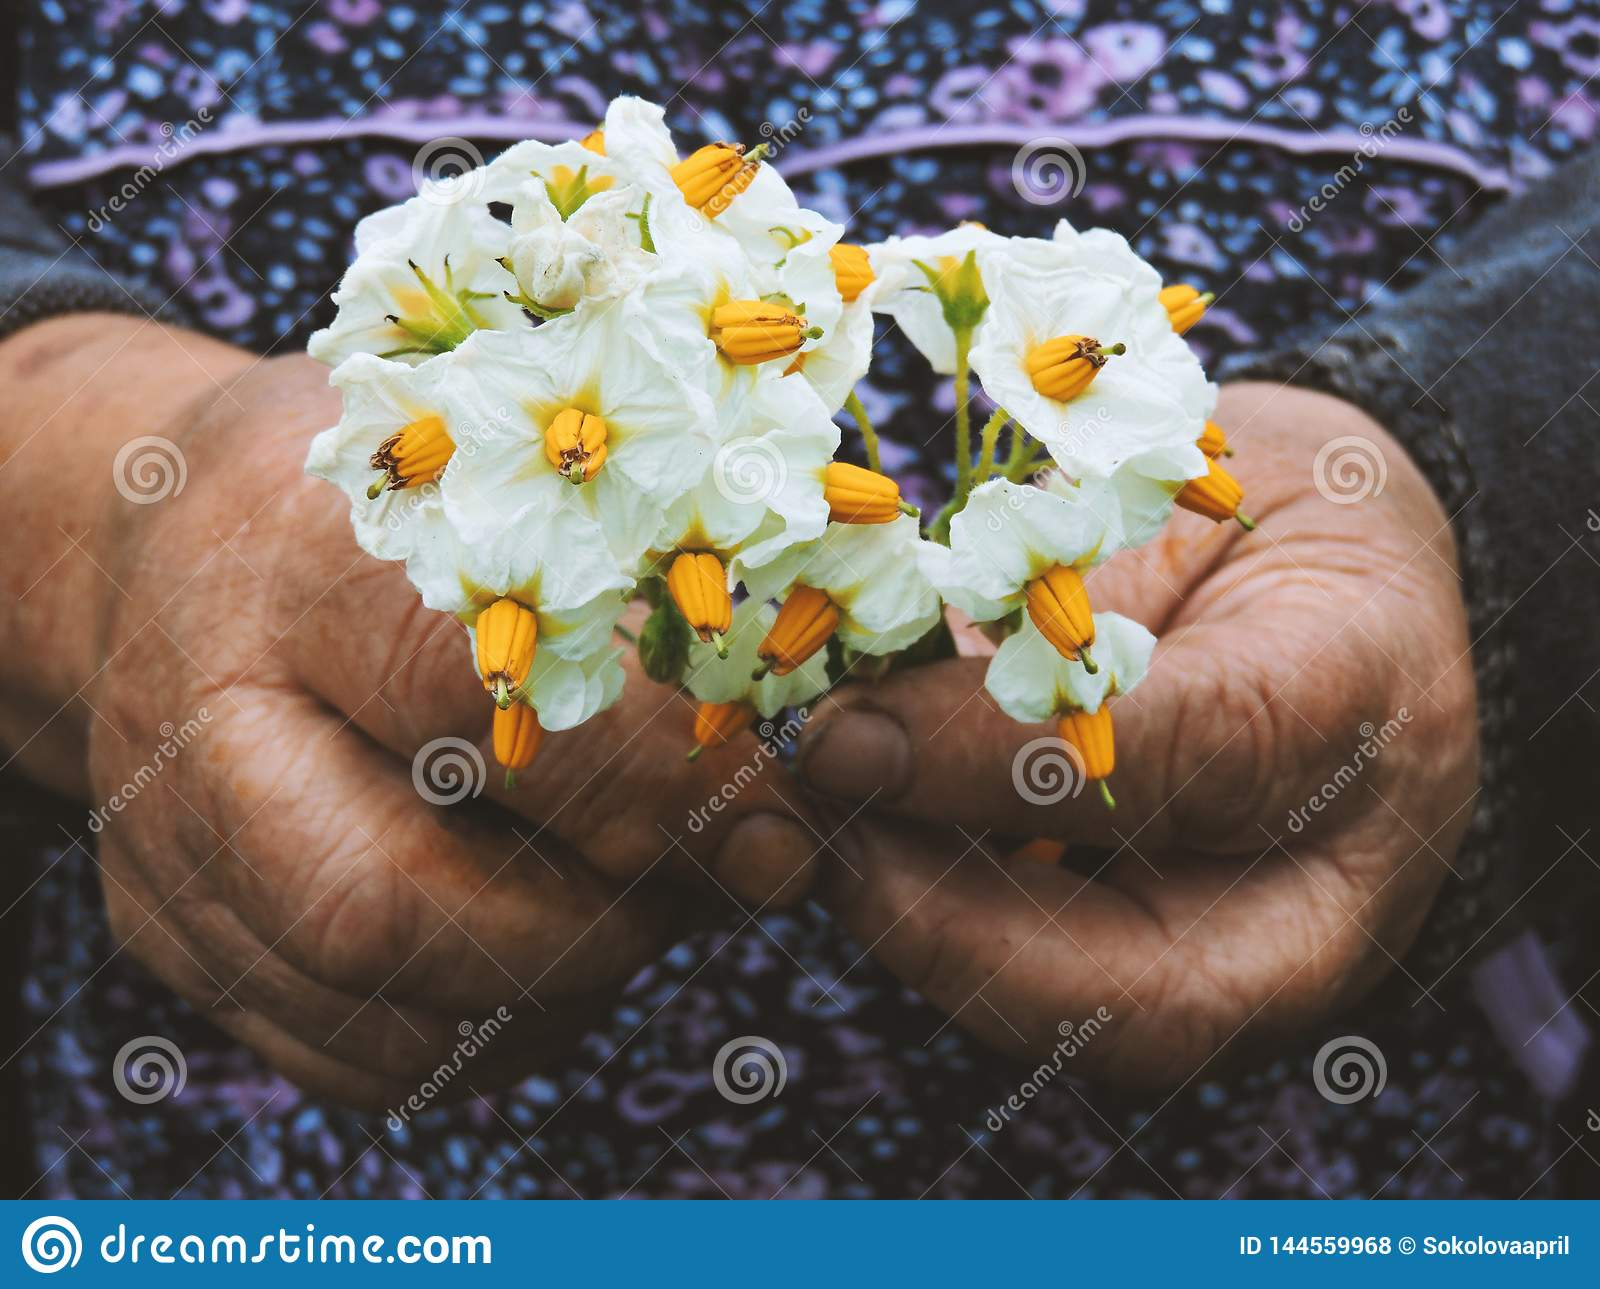 Gardeners hands planting flowers. Hand holding small flower in the garden. Hand holding  potato flowers.